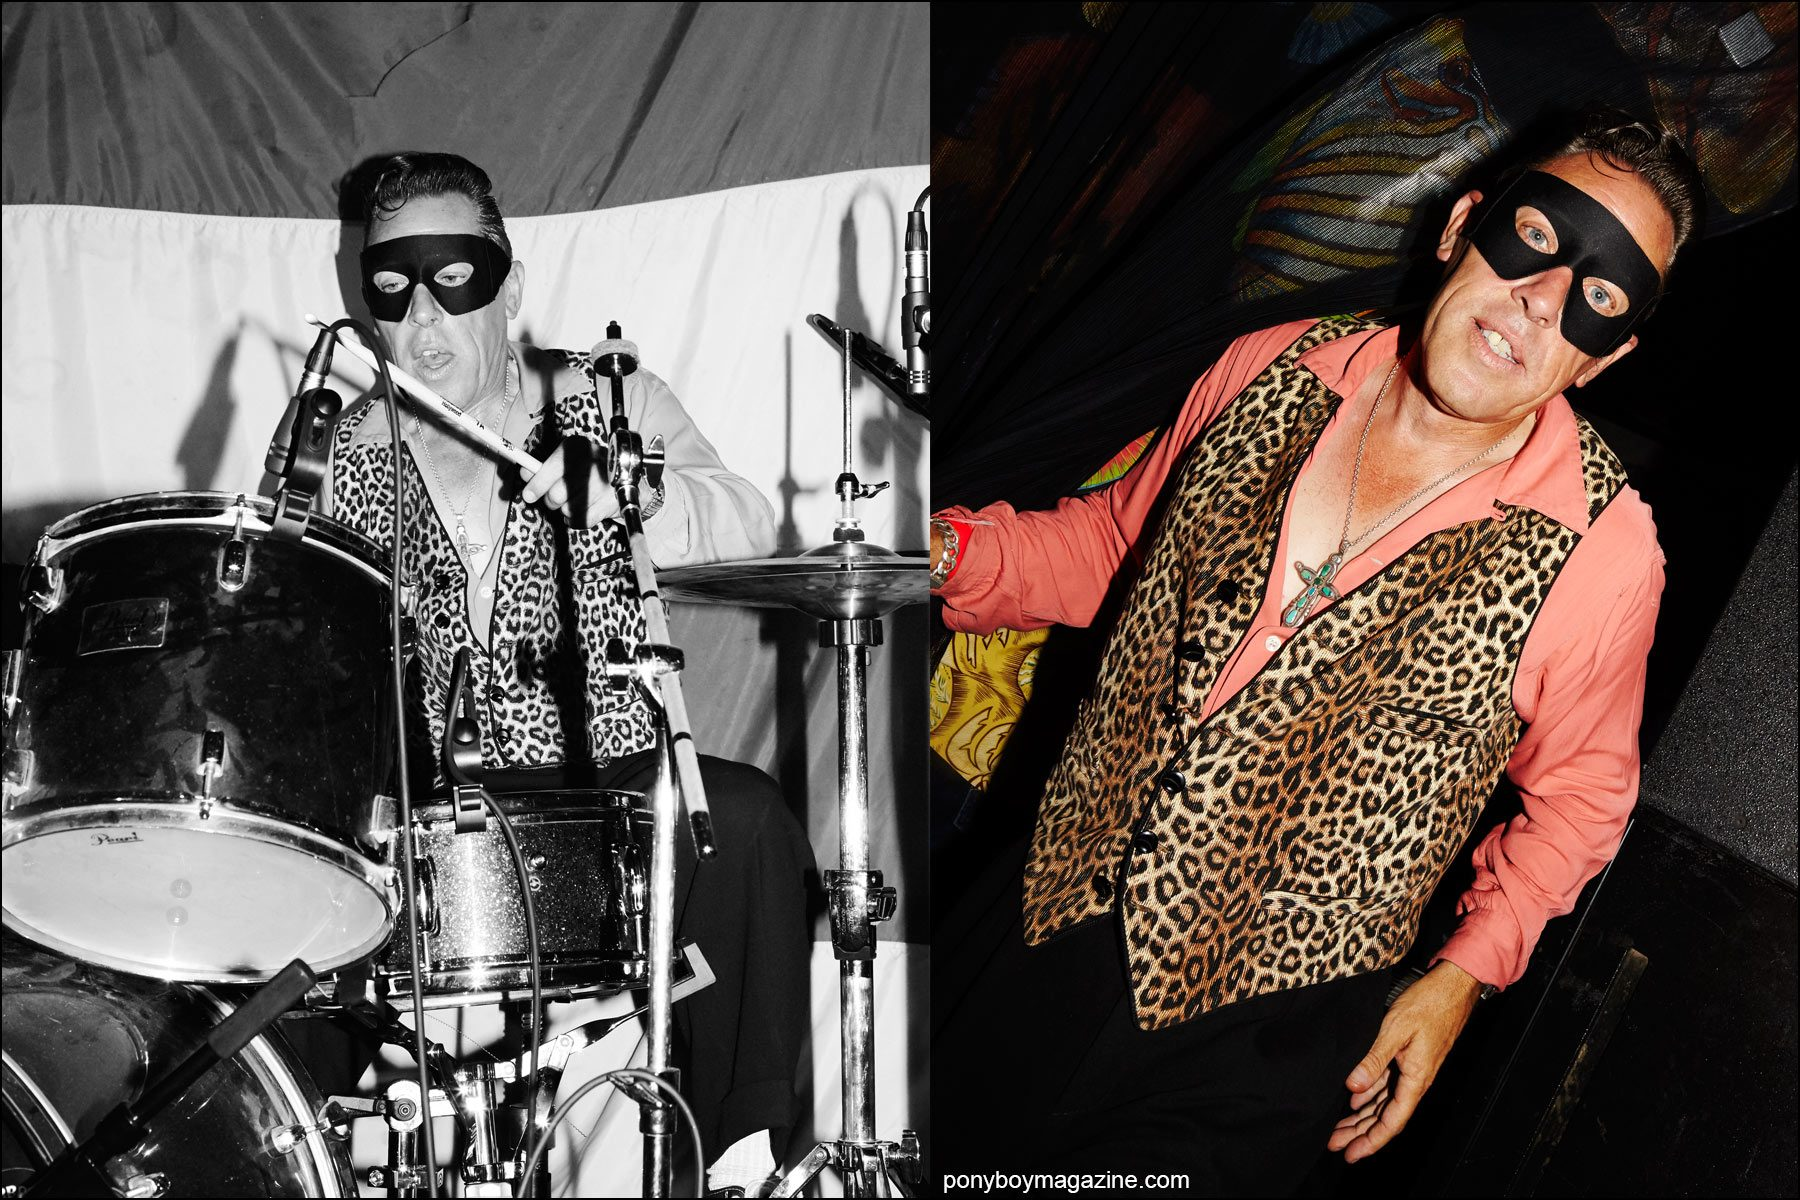 Ricky McCann, rockabilly drummer for Silvertooth Loos & The Witch, photographed at Rebel Night Hula Rock Vol 2 weekender in New York City. Photographs by Alexander Thompson for Ponyboy magazine NY.